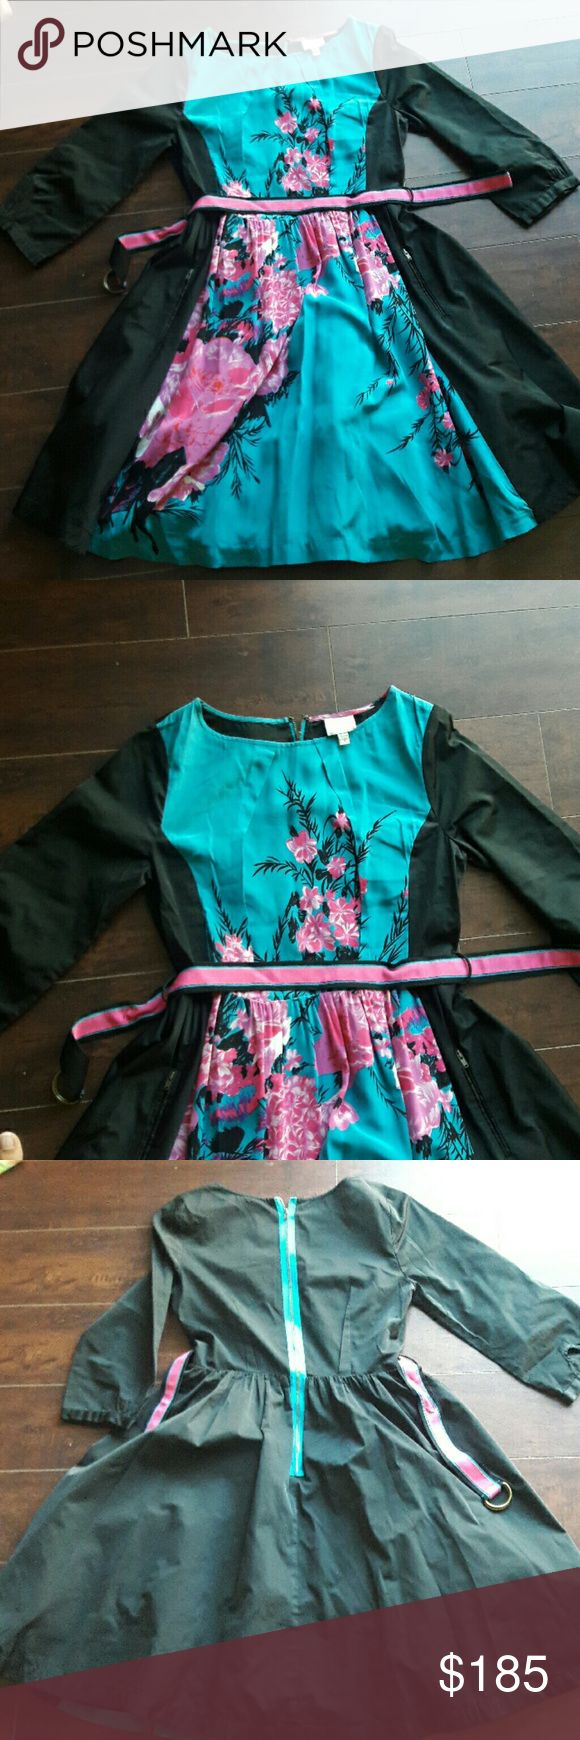 Tracy Reese dress Beautiful rate Tracy Reese dress, similar worn by taylor swift if it matters. Great condition. About 38in. In length size 4. Worn a few times. With pockets. Tracy Reese Dresses